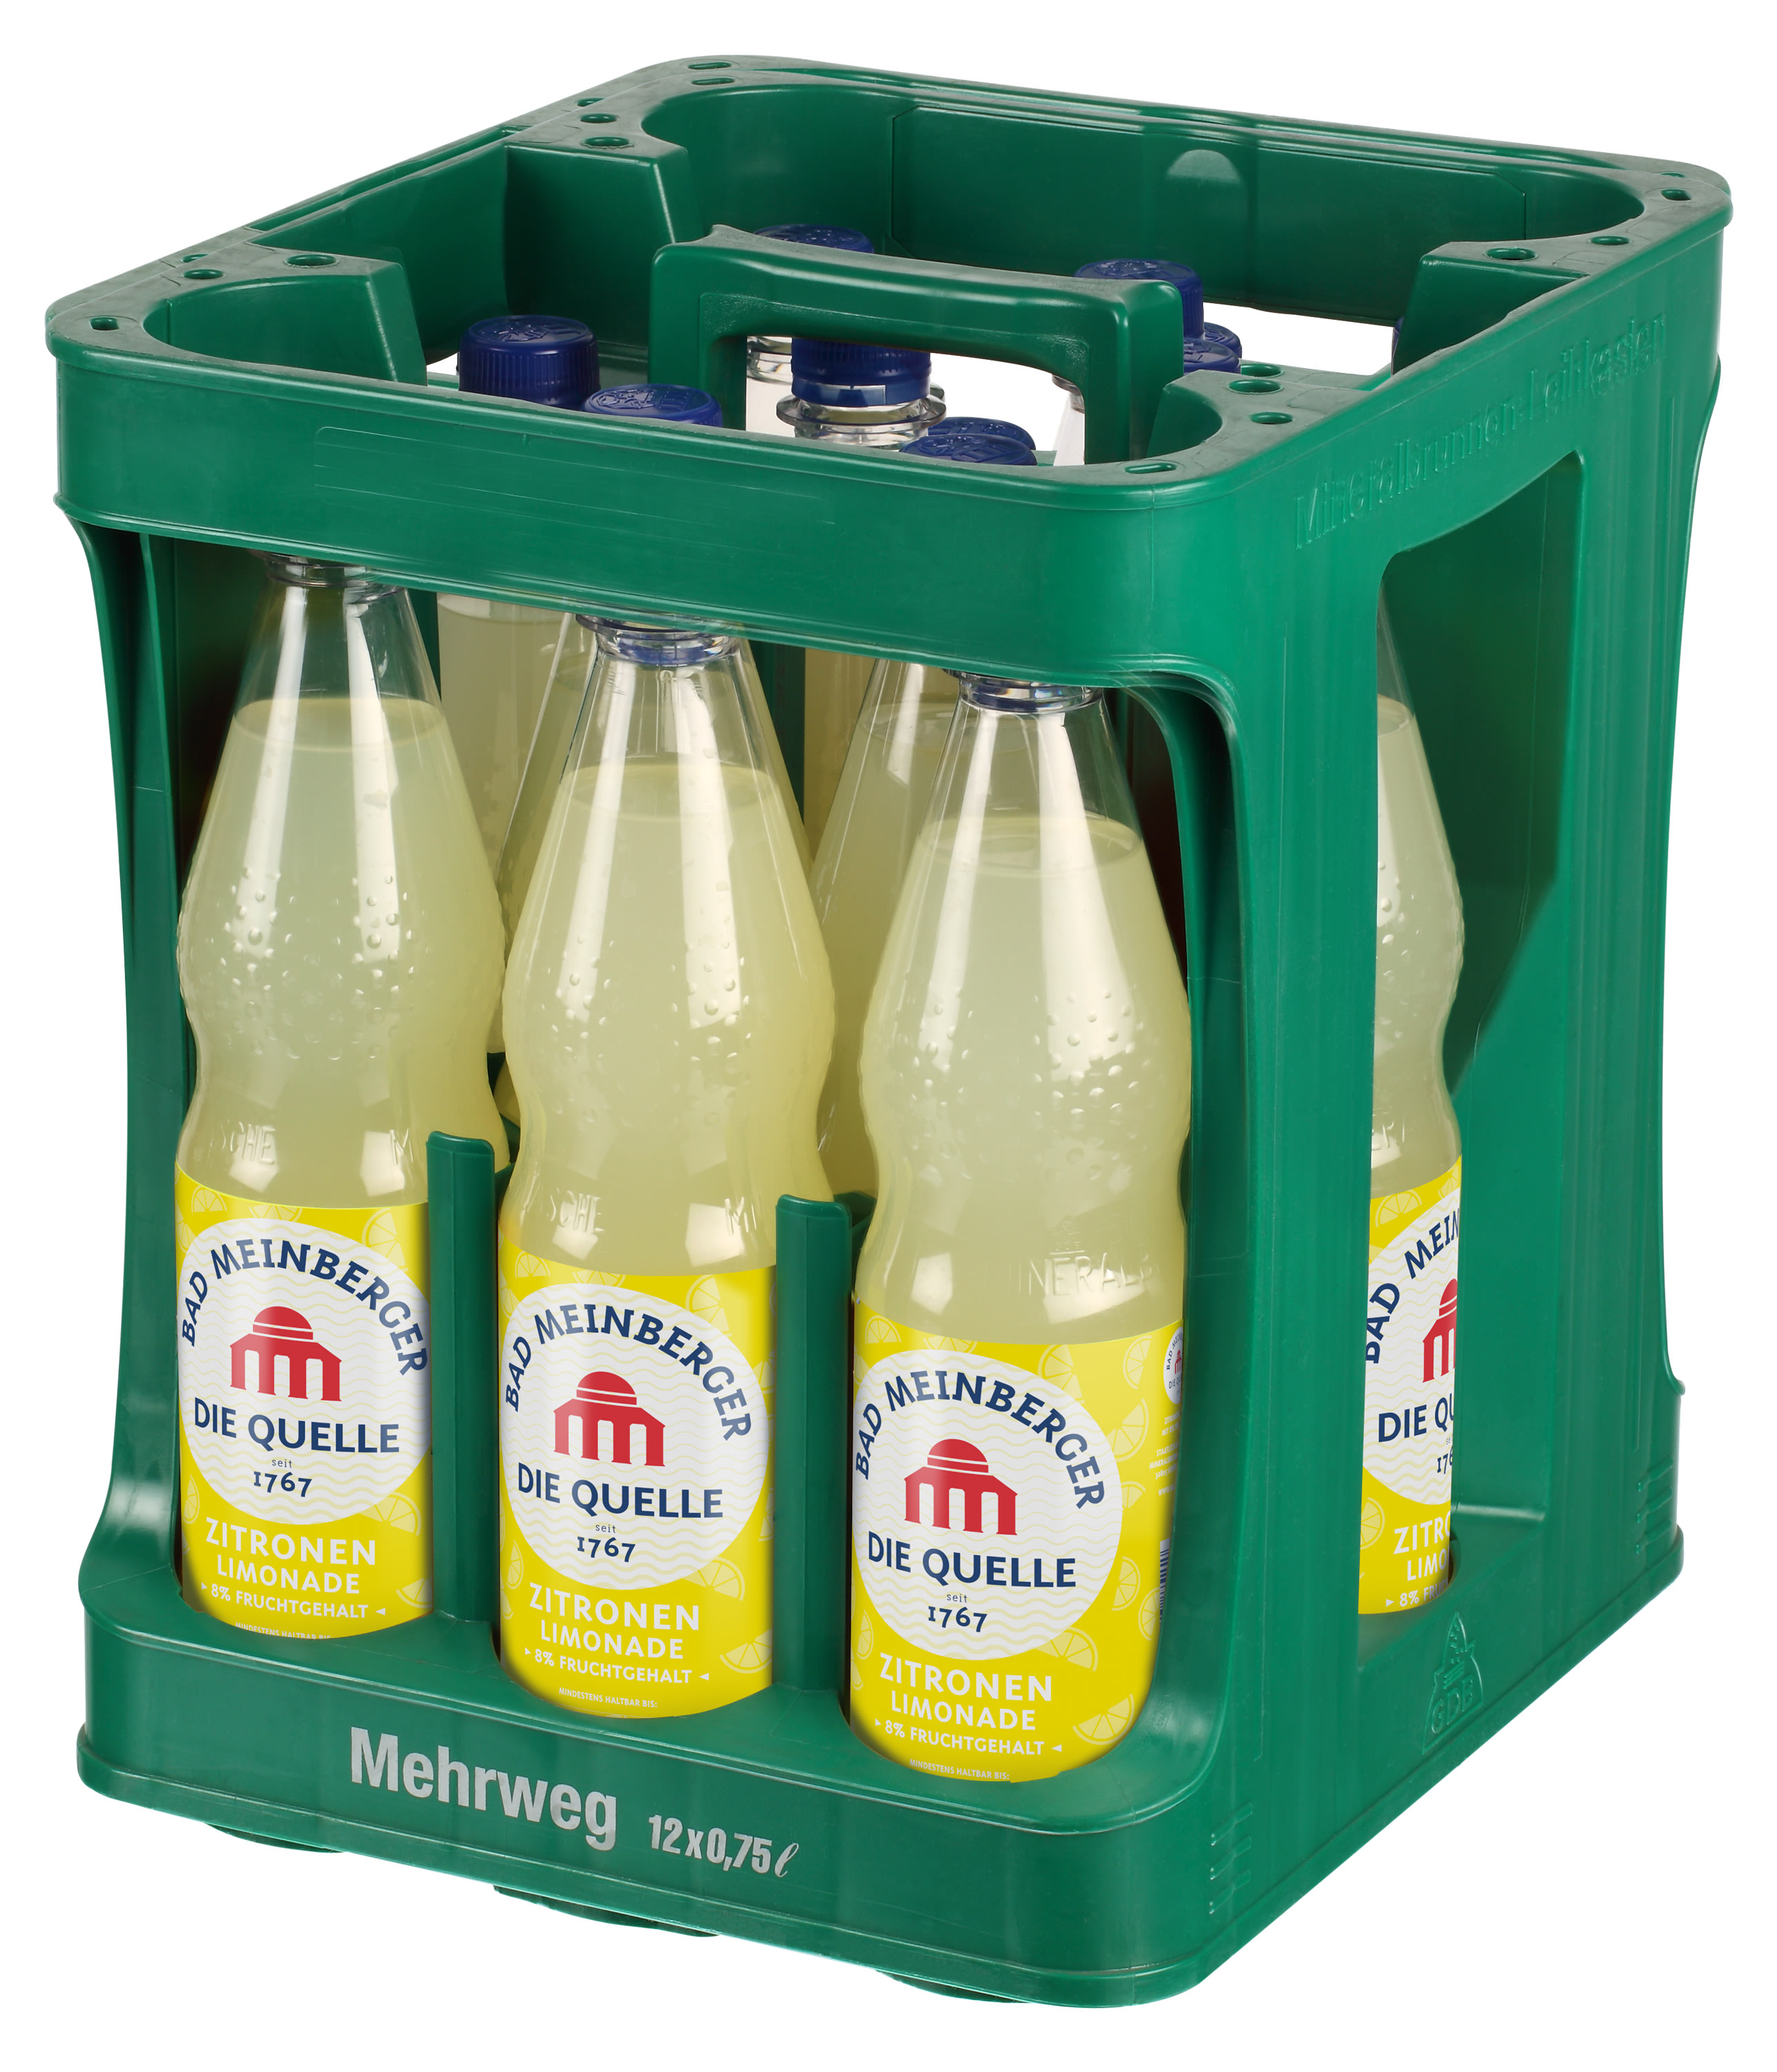 Bad Meinberger Zitrone Limonade Kasten 12 x 0,75 l PET Mehrweg